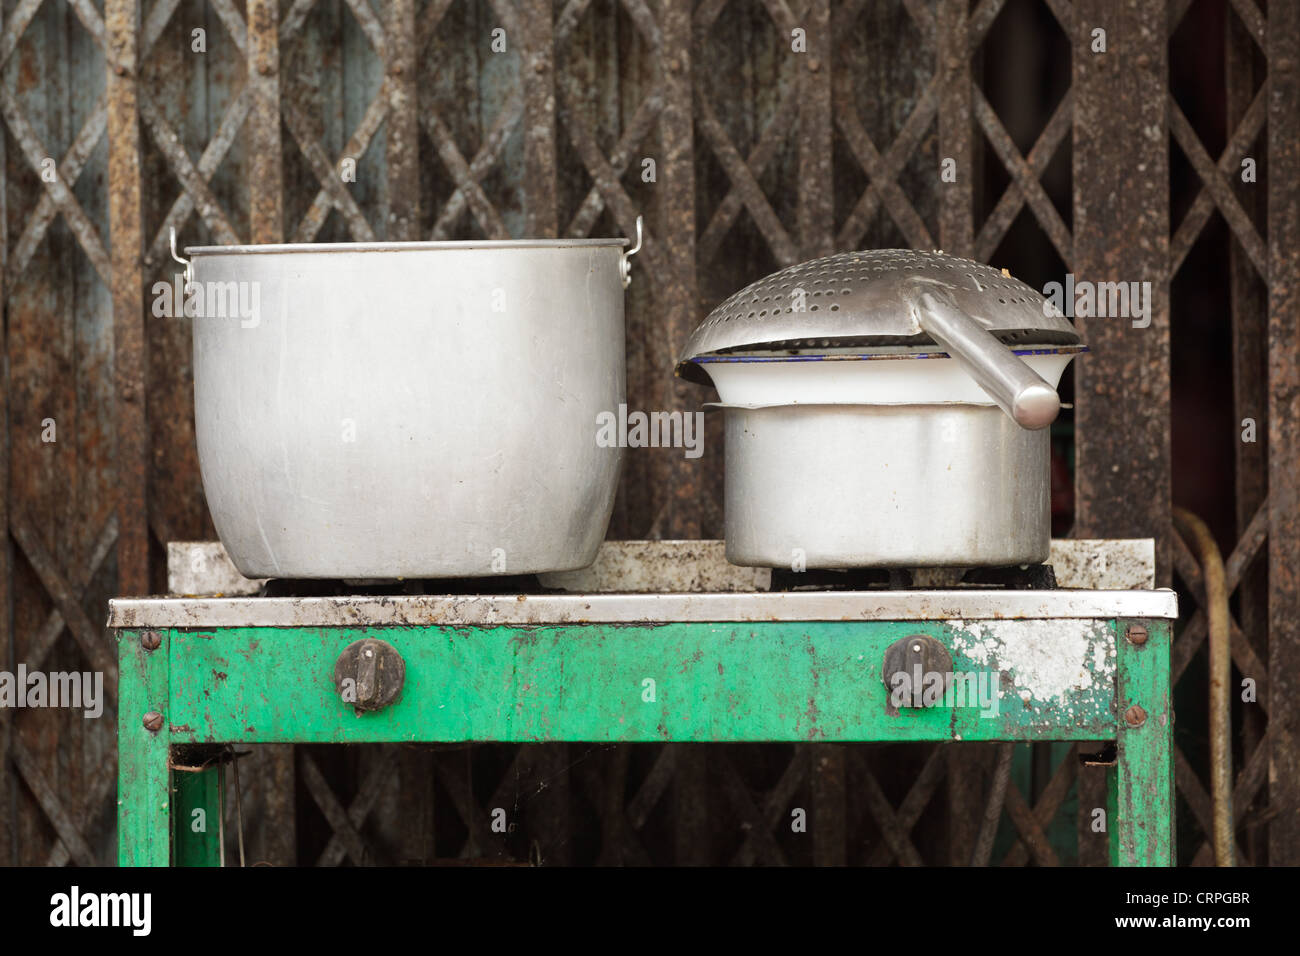 Old gas stove with aluminium cauldrons and wok, Vientiane, Laos - Stock Image